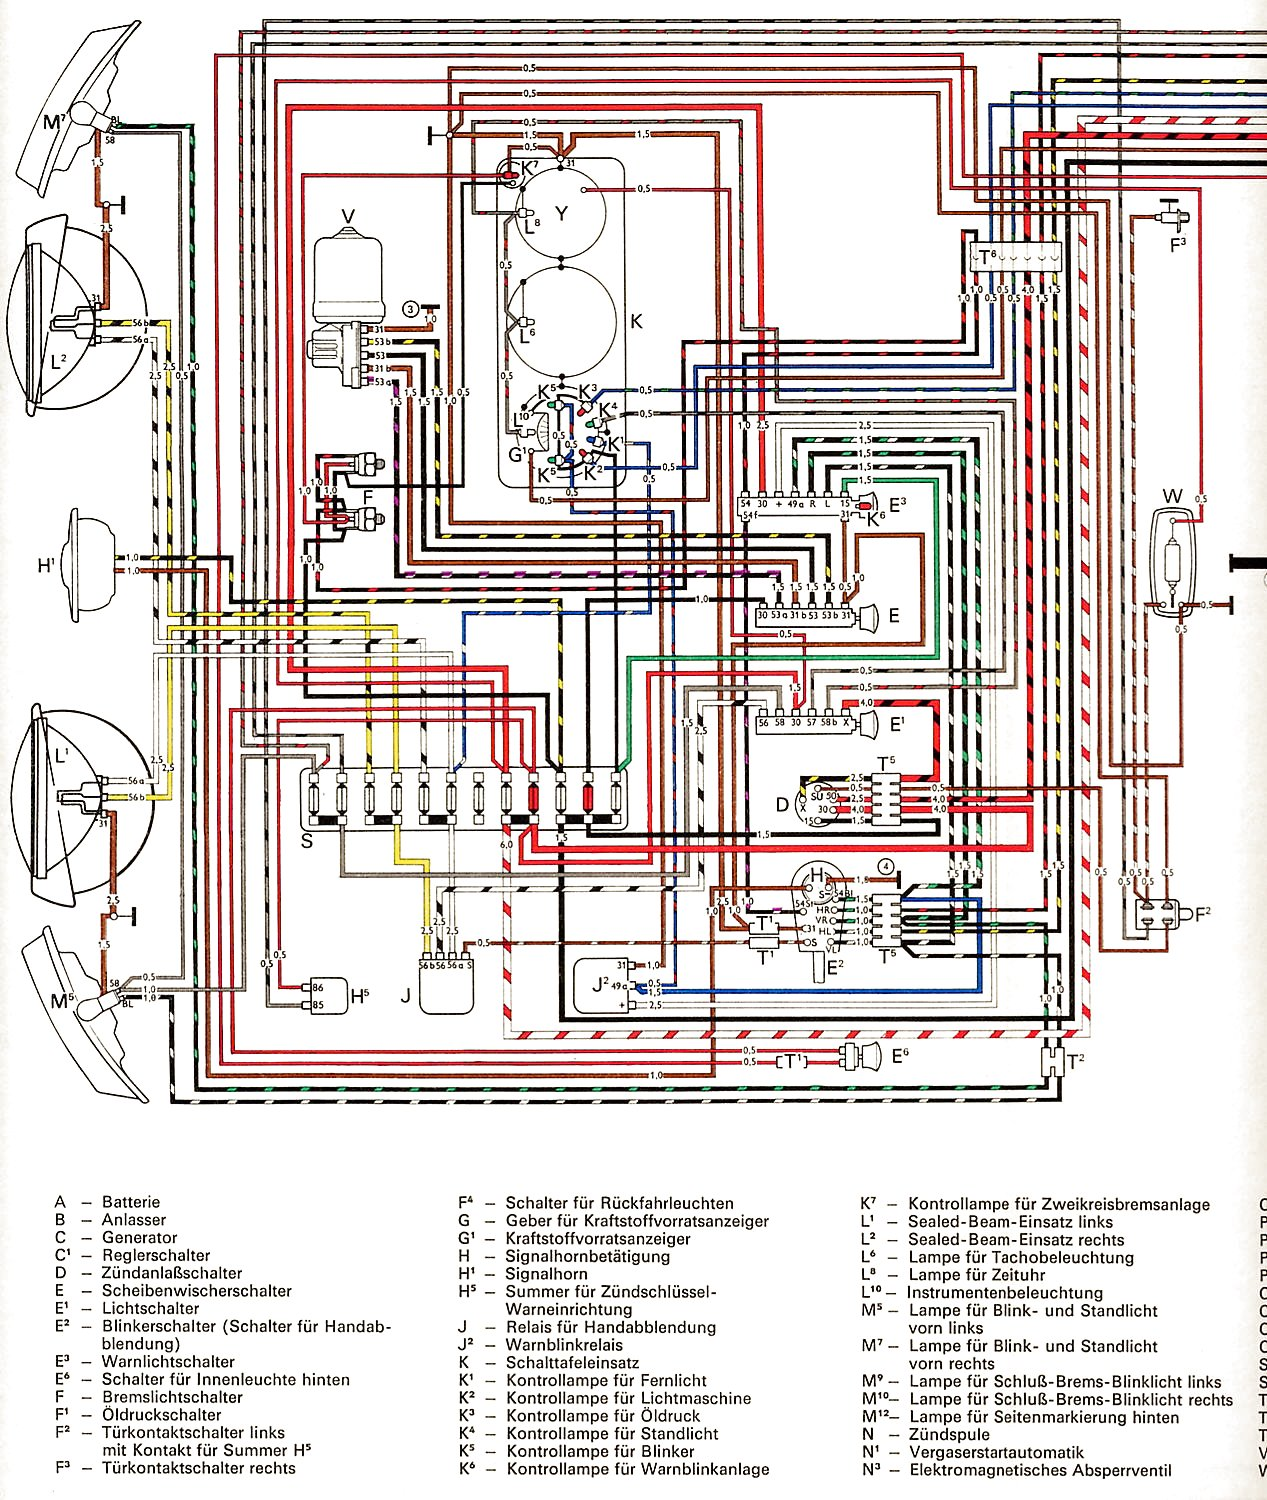 DIAGRAM] 68 Vw Wiring Diagram - Kenworth Engine Fan Diagram List  cover.mon1erinstrument.frmon1erinstrument.fr